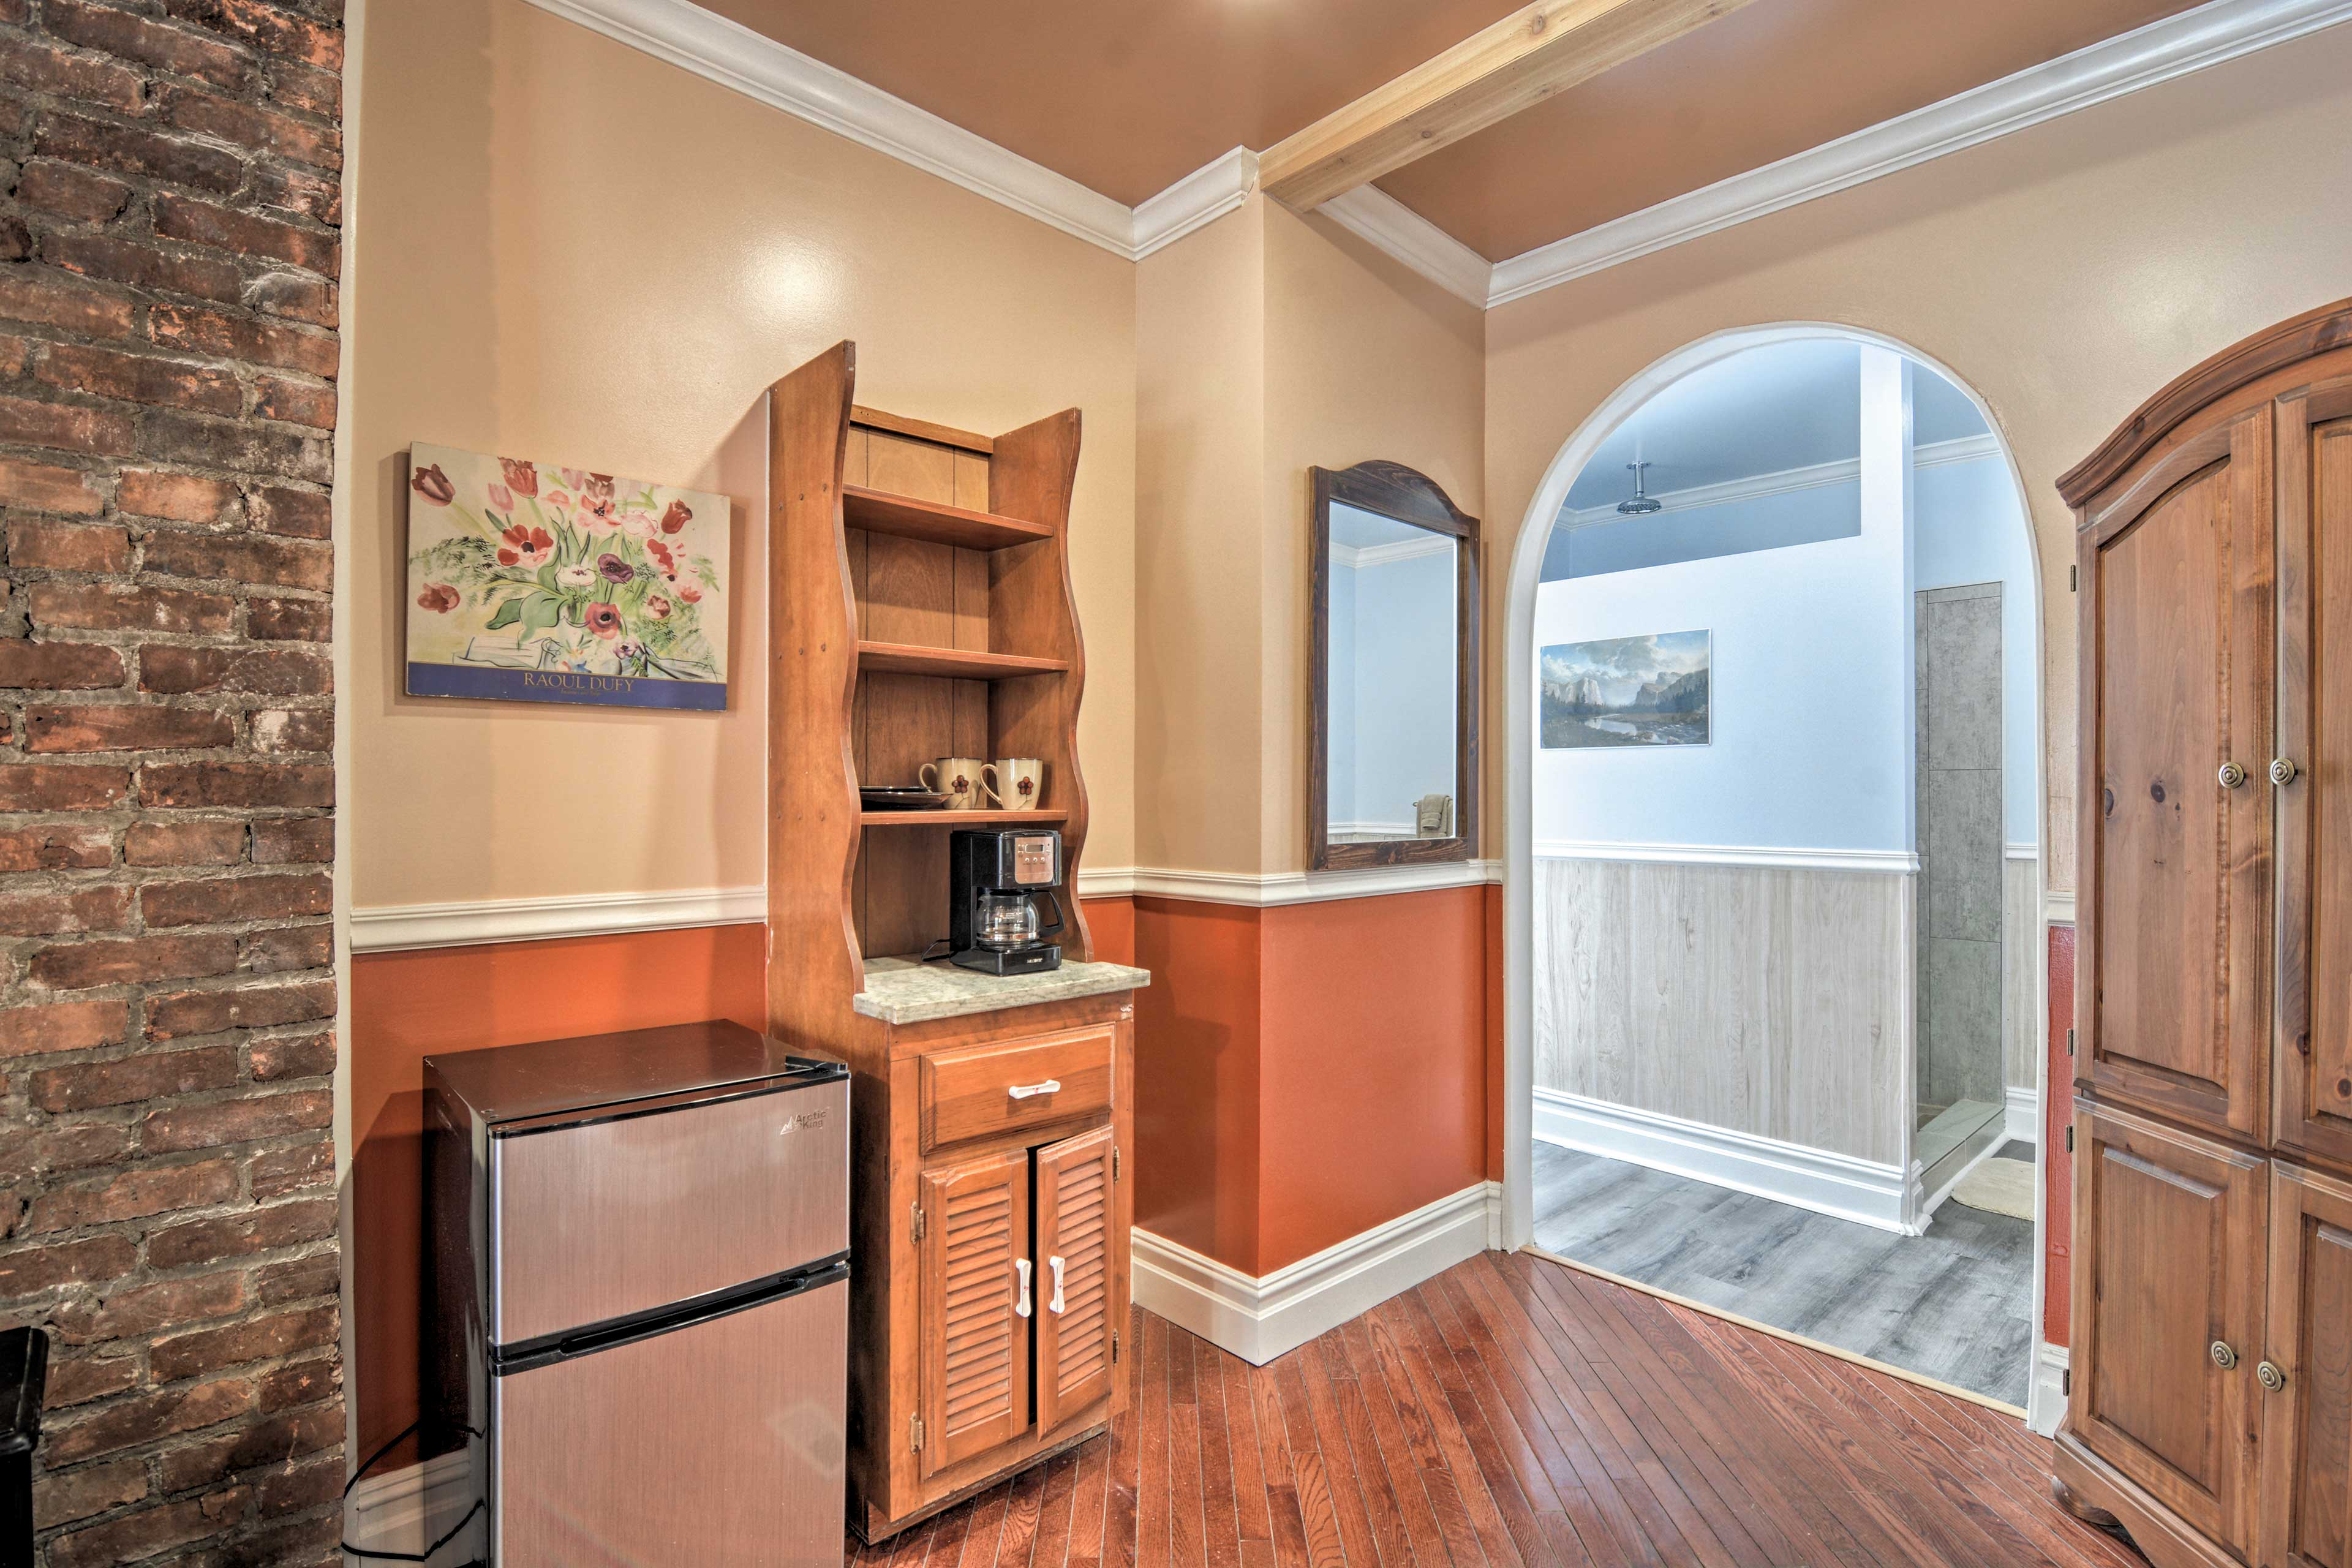 The master bedroom also features a kitchenette and electric fireplace.